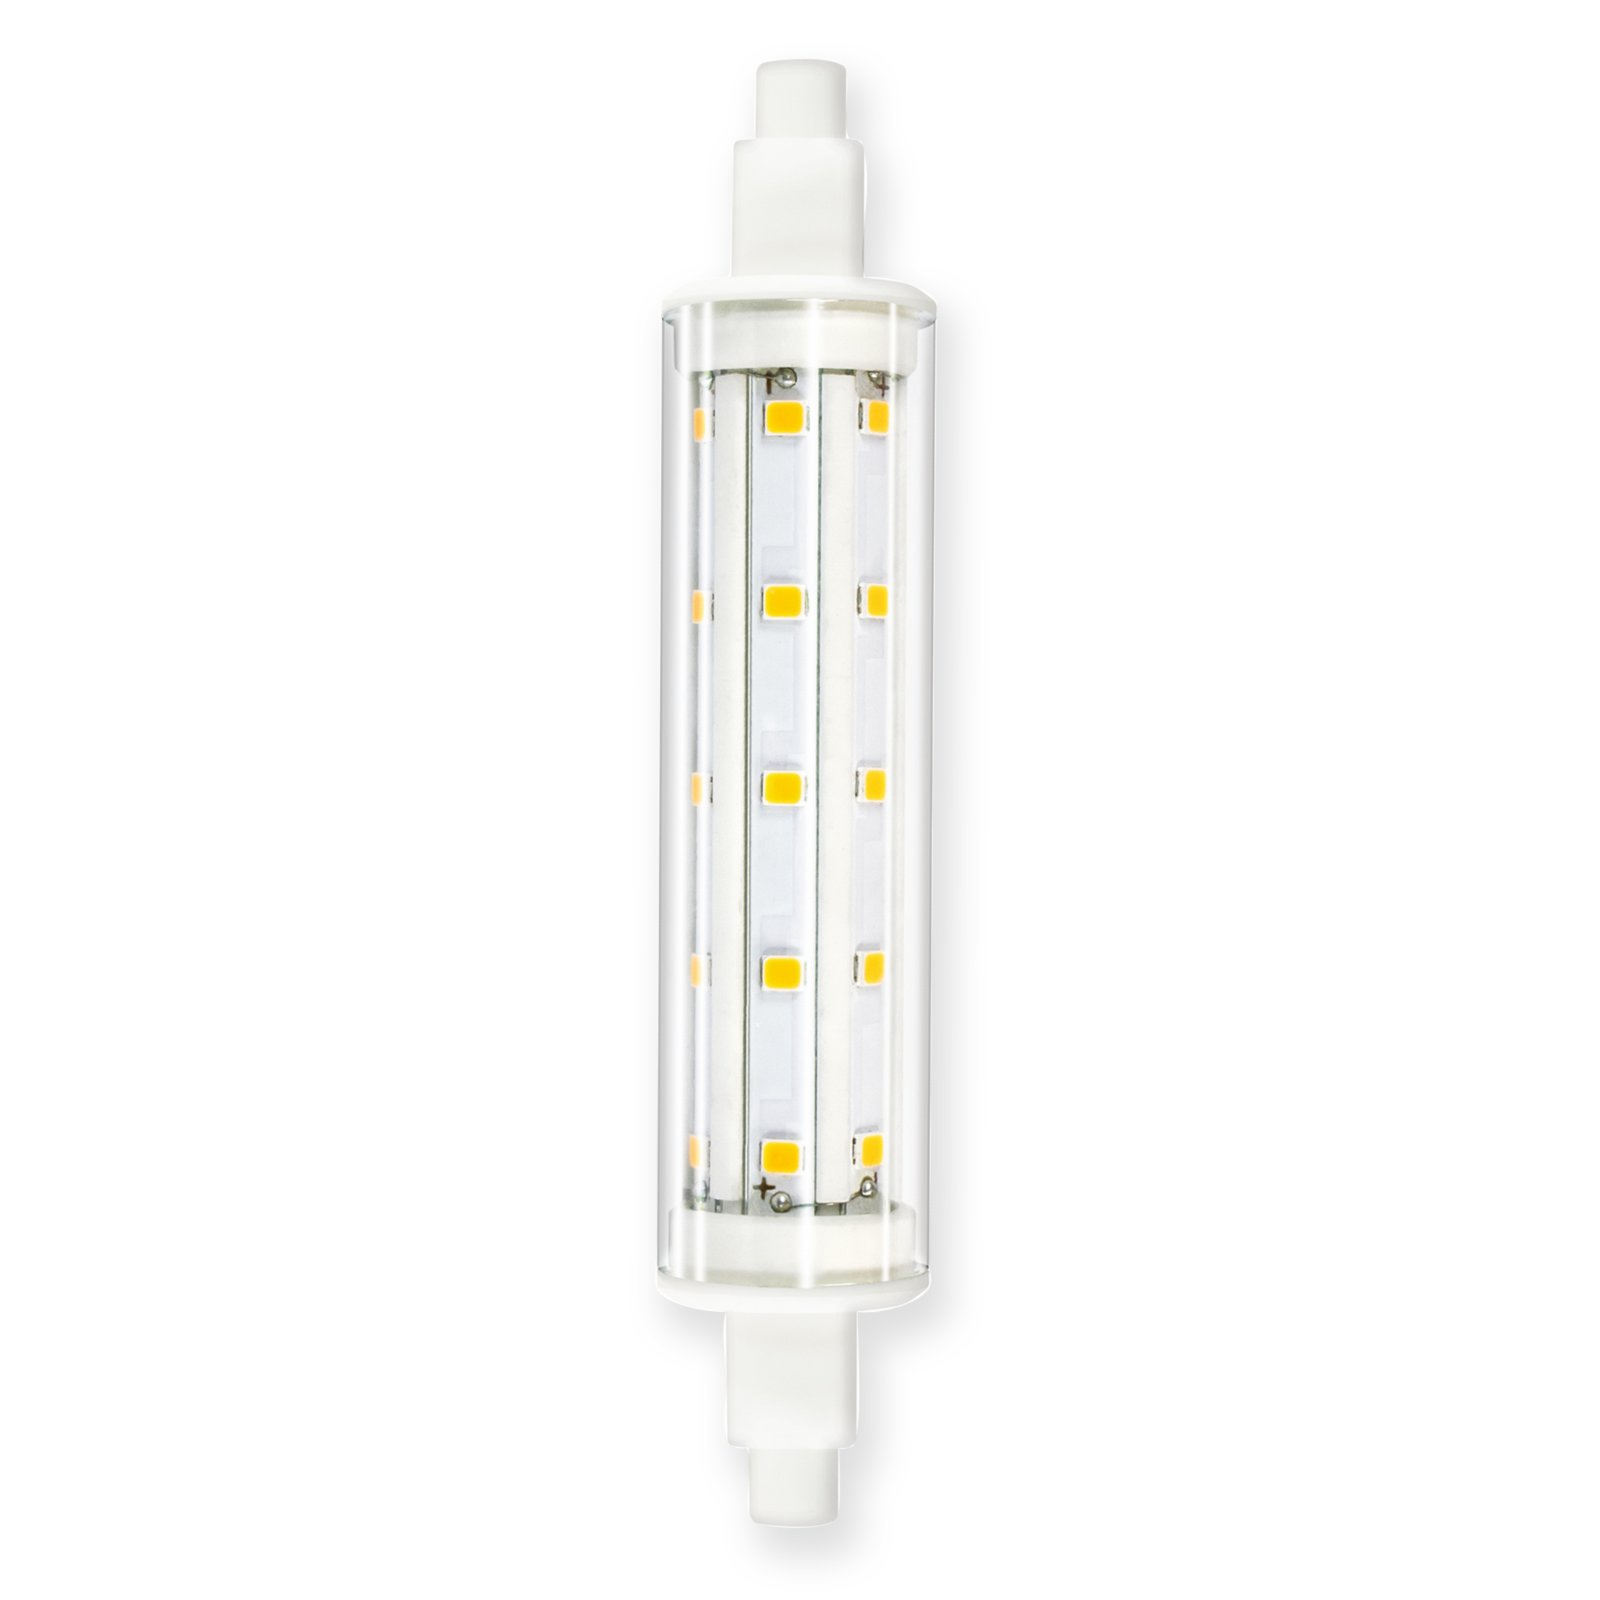 LED-Stabsockellampe LIGHTIME - Ra80 - 8 W - warmweiß